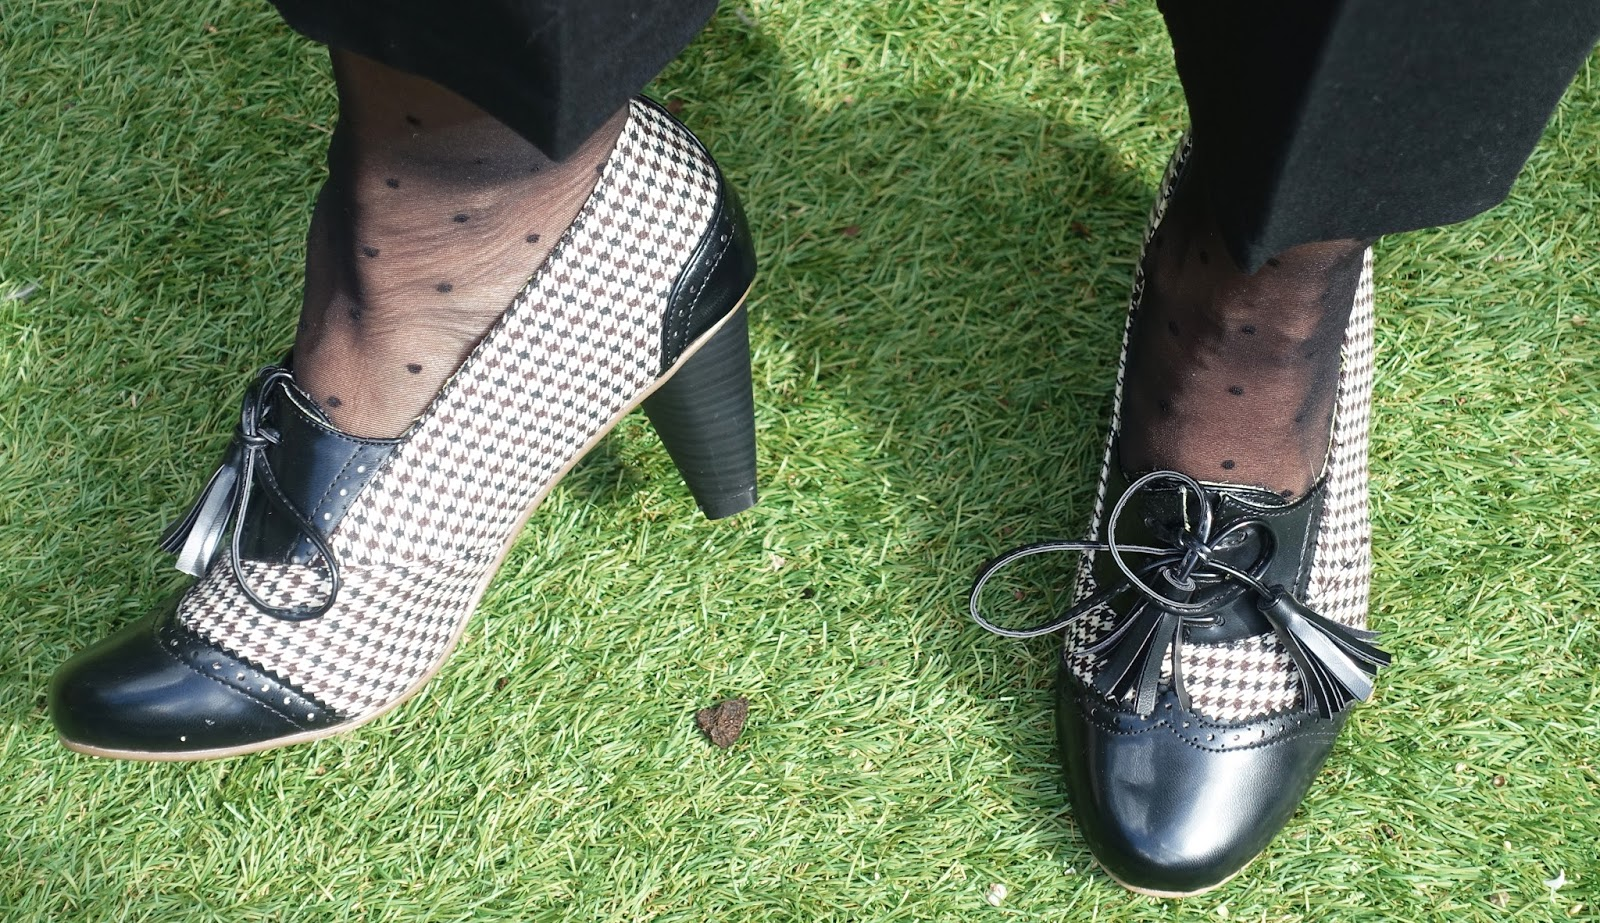 The hounds tooth trend works well in footwear too as these Banned shoes show